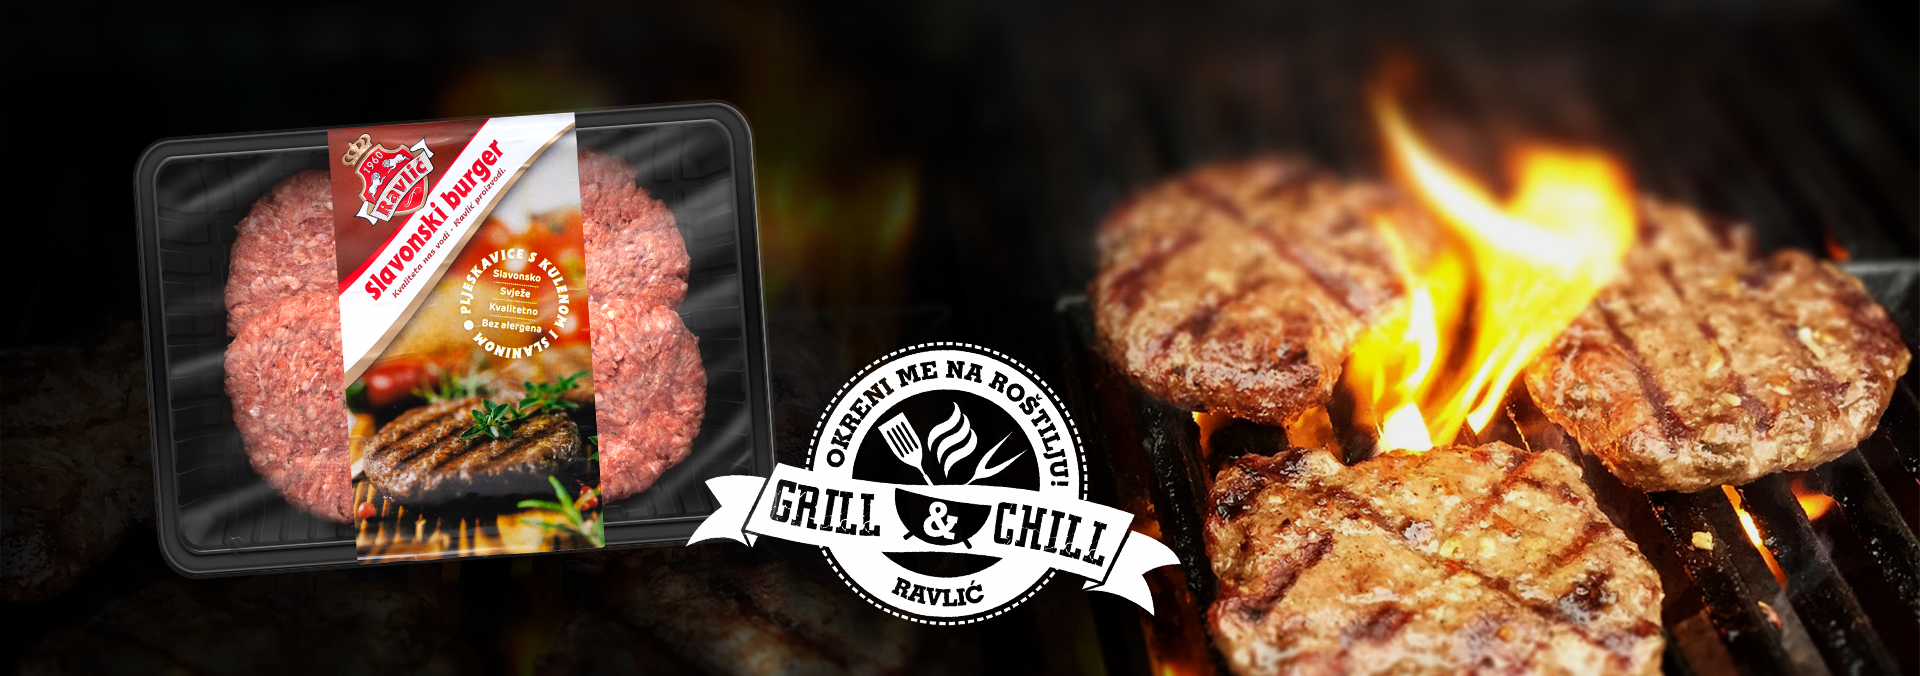 sl-burger-grill-and-chill-02